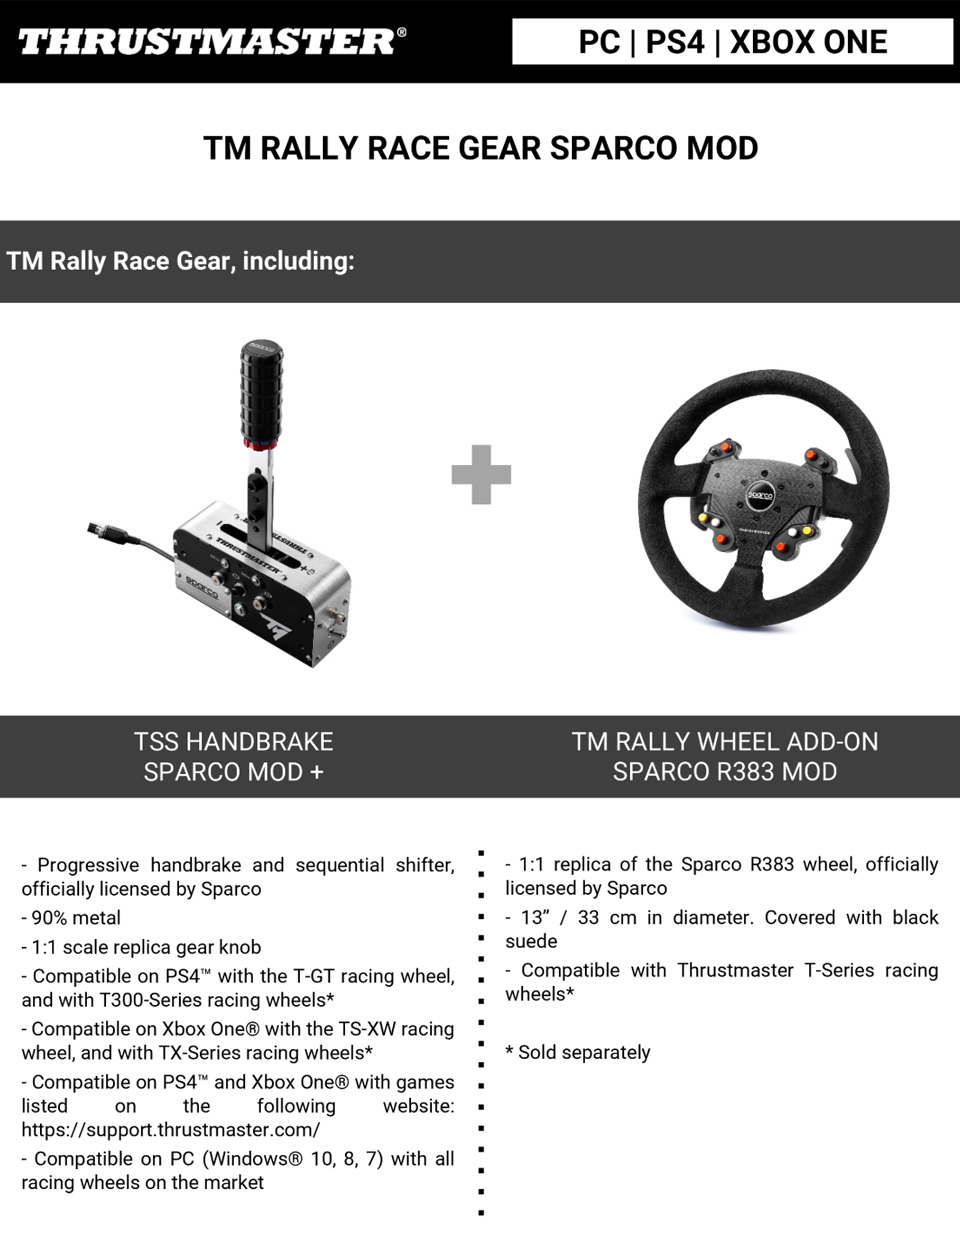 Thrustmaster Rally Race Gear Sparco MOD features